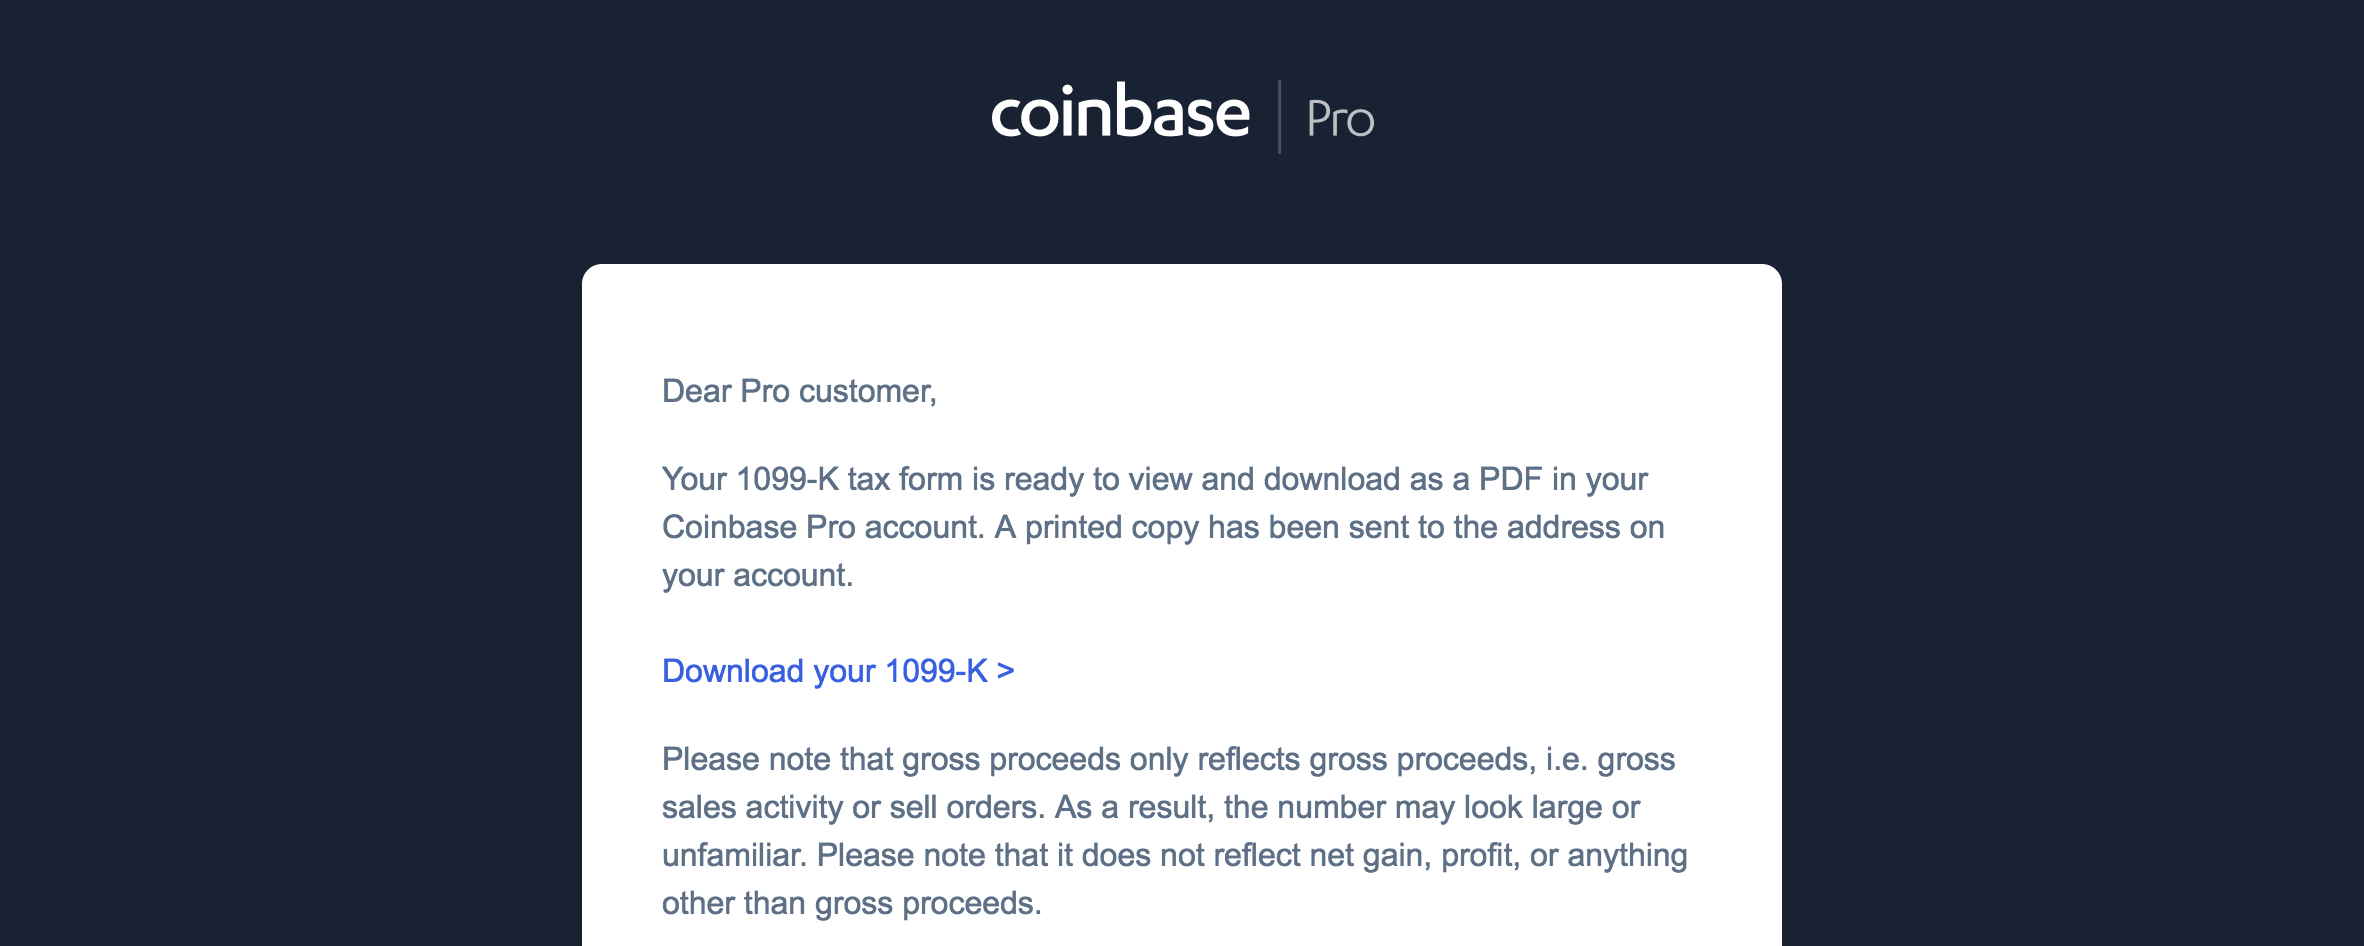 Coinbase Pro sent me a 1099-K  What do I do now? | TokenTax Blog